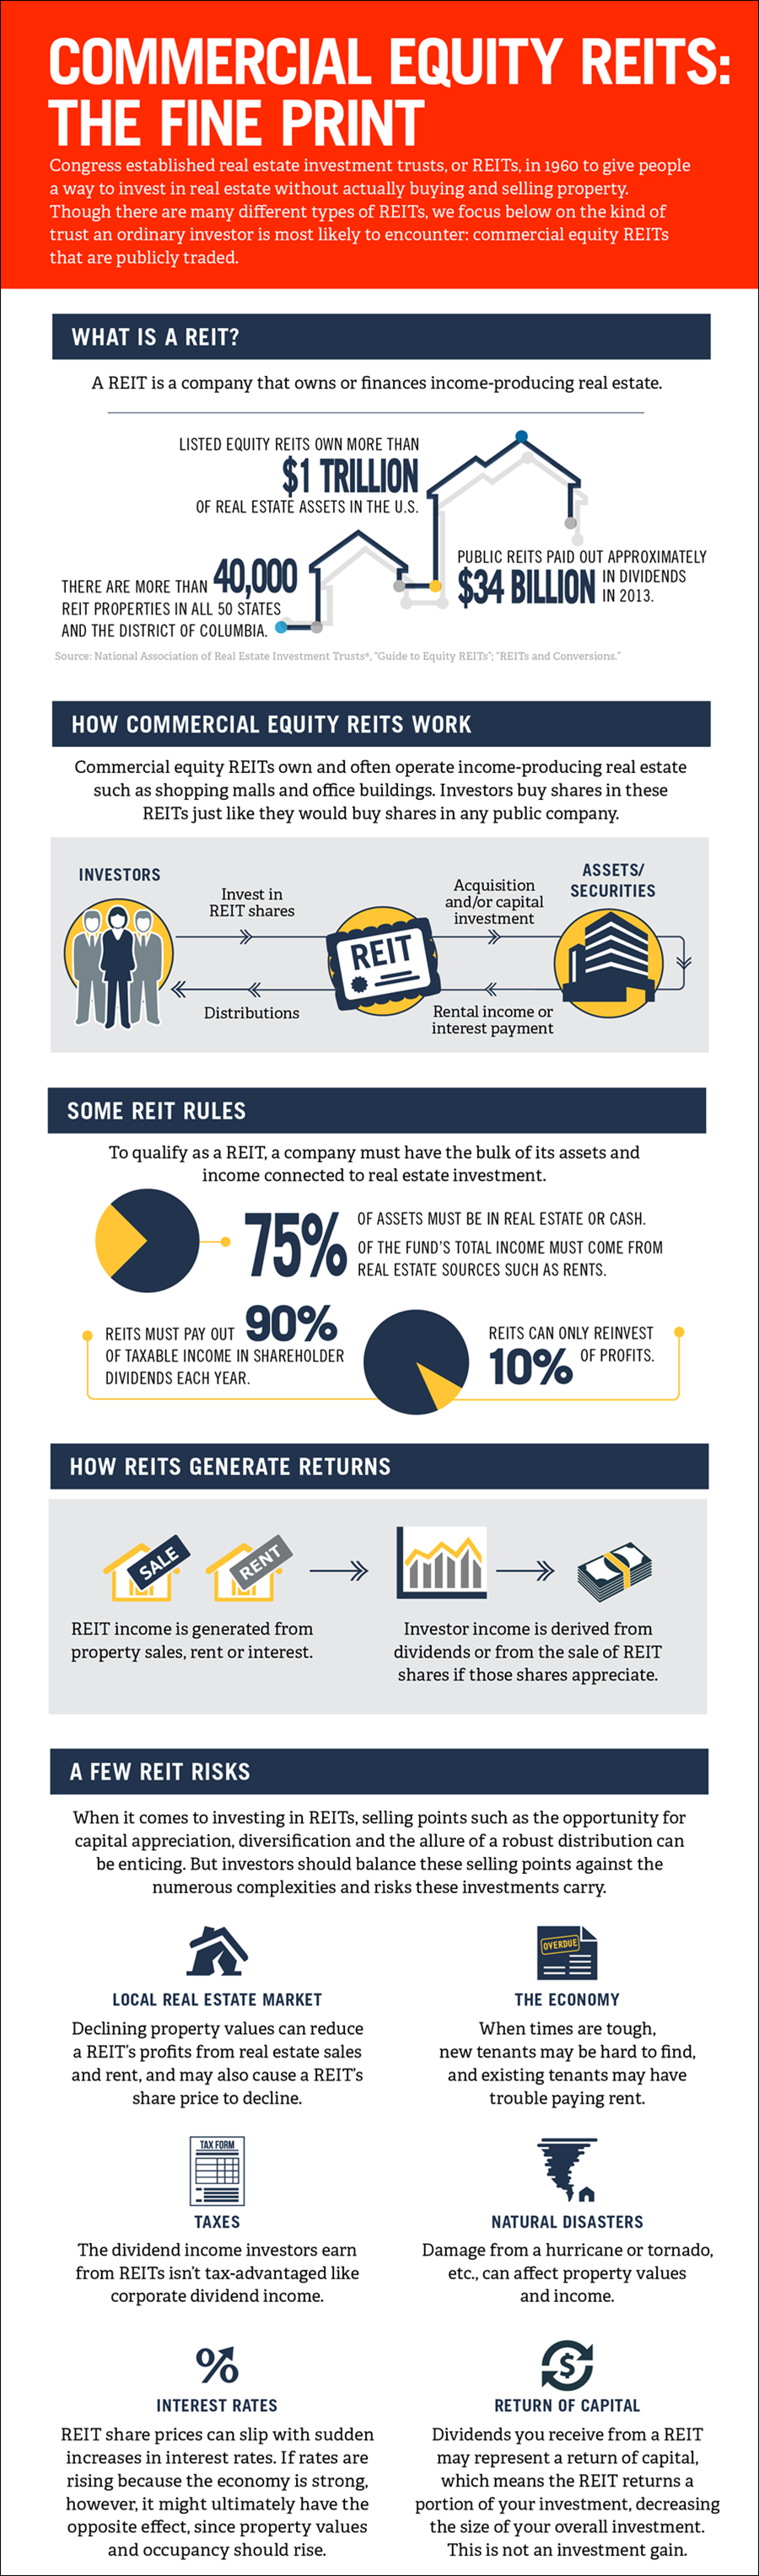 comparison of investment rules